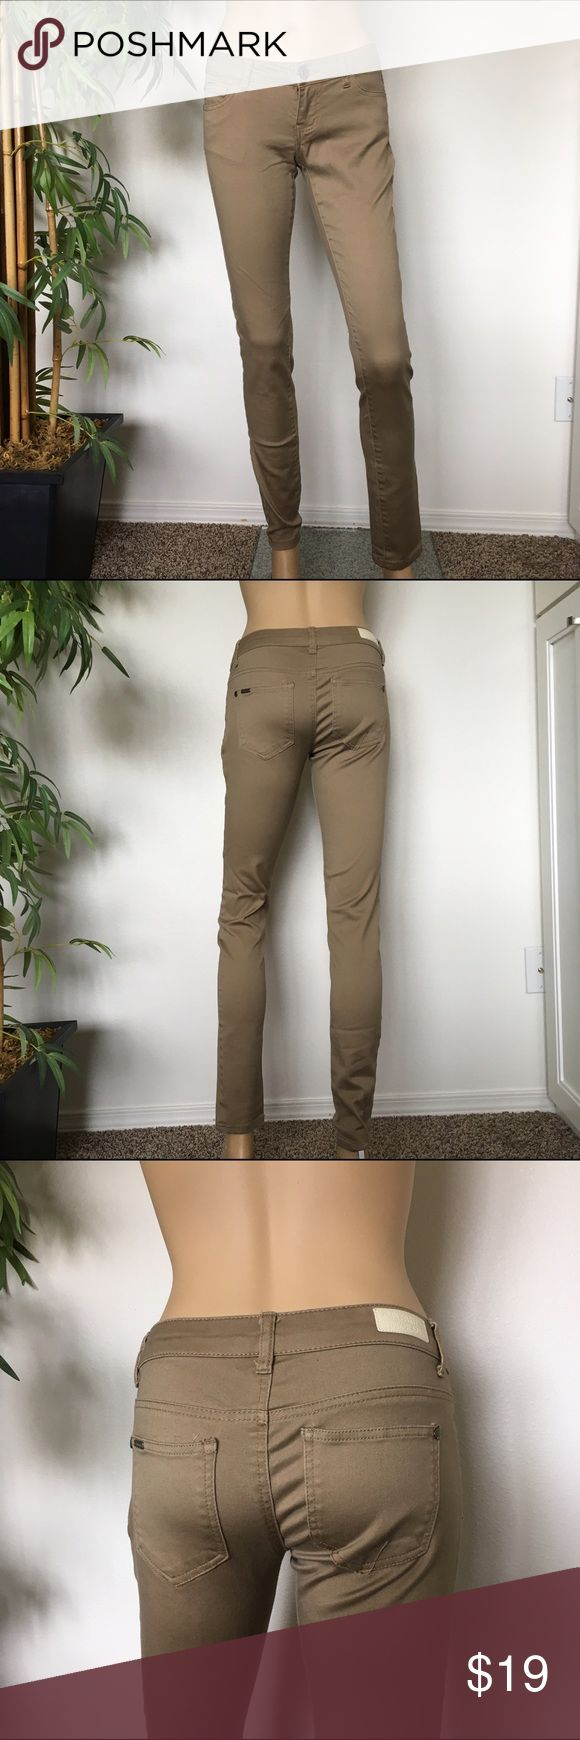 Celebrity Pink Skinny Jeans size 1 tan Gently worn tan skinny jeans size 1 stretchy material Celebrity Pink Jeans Skinny